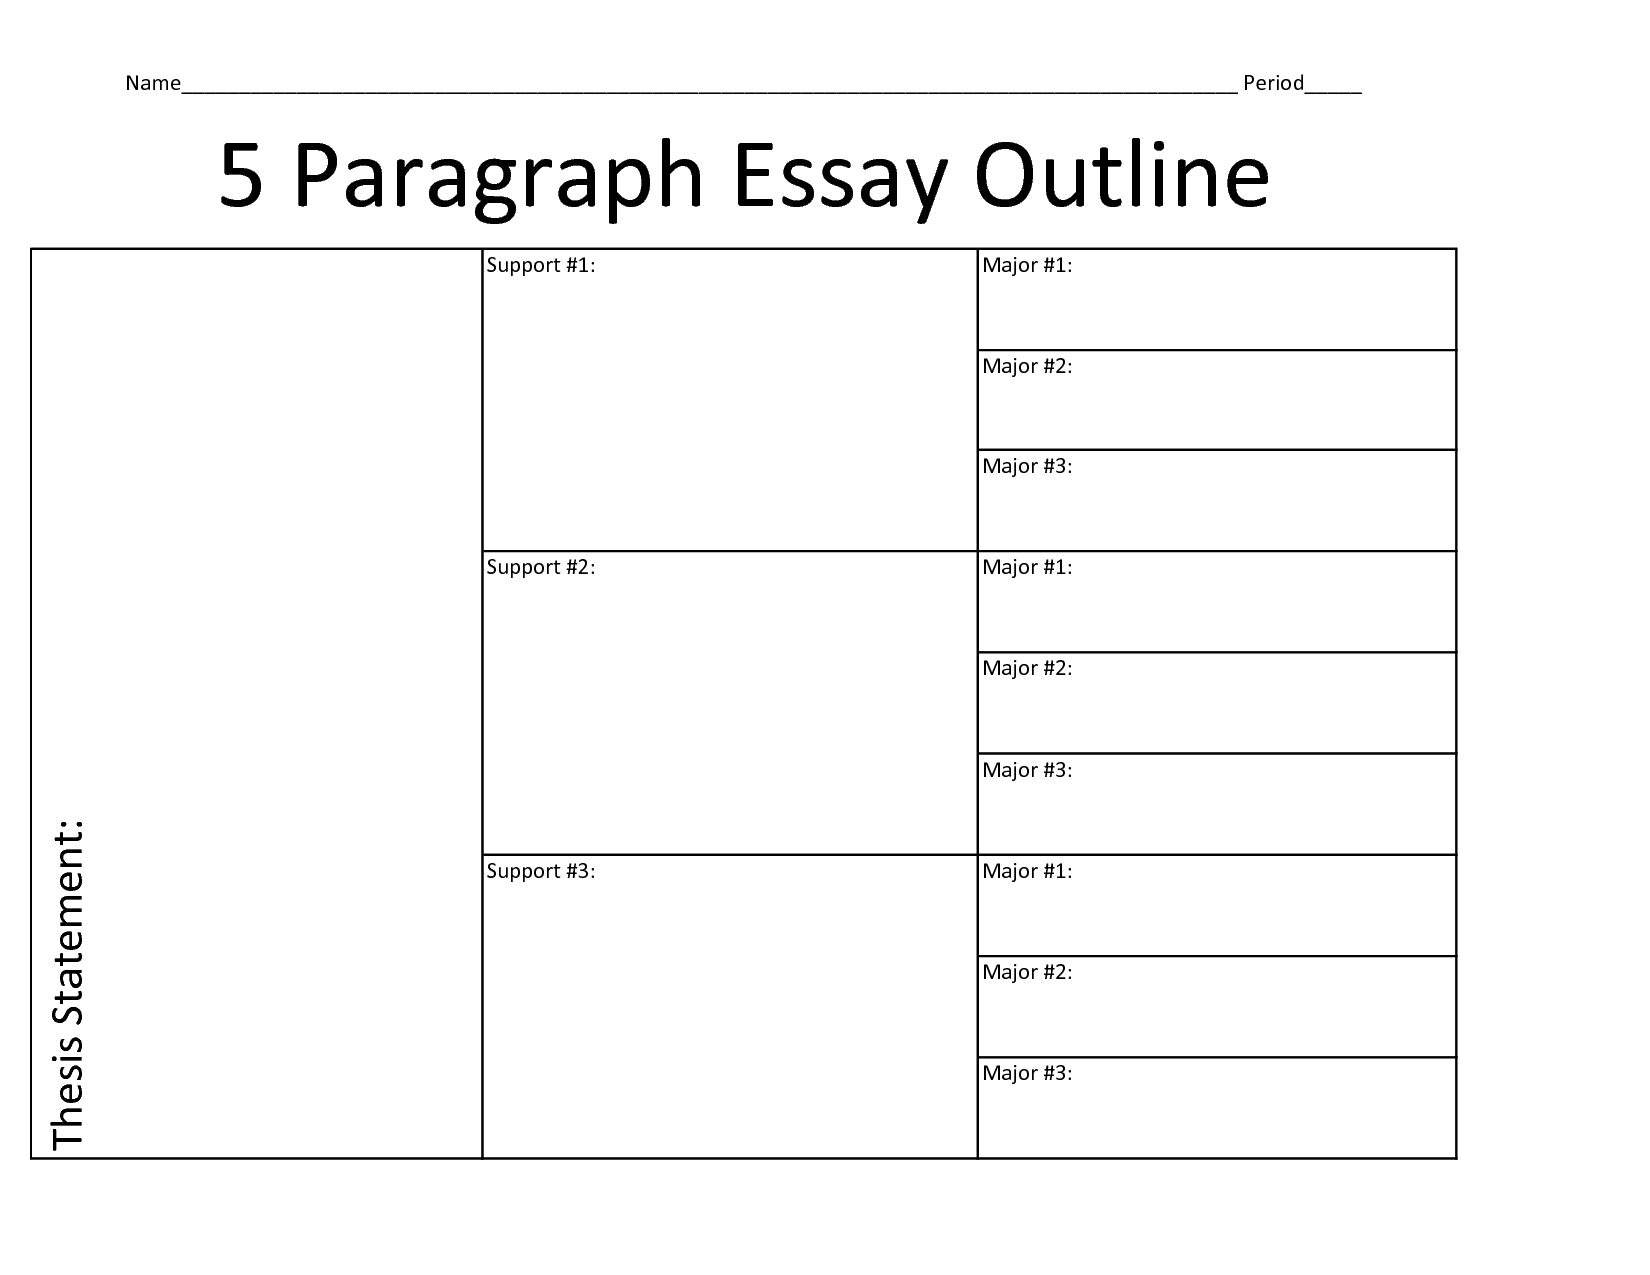 015 Five Paragraph Essay Graphic Organizer Organizers Executive Functioning Mr Brown039s Outline L Wonderful 5 Middle School Doc Full